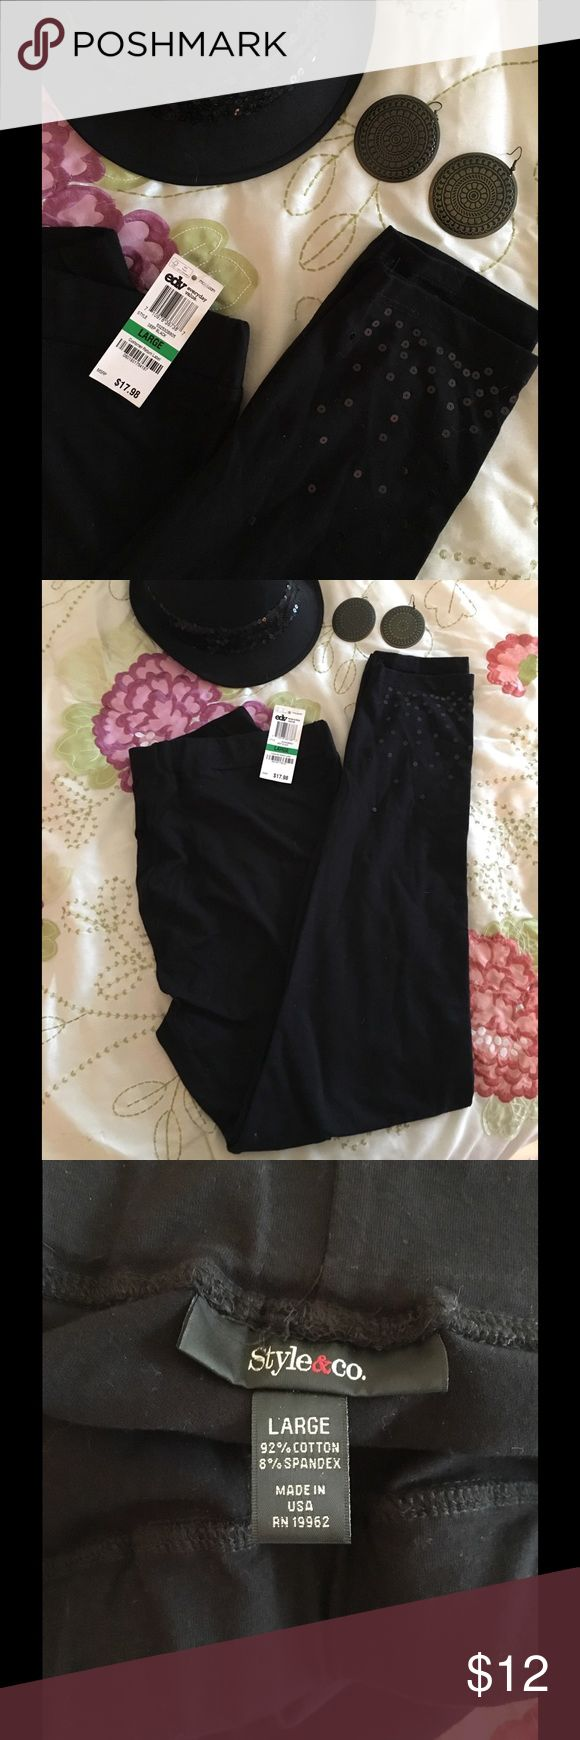 Style & Co black sequin leggings Style & Co black sequin leggings. Sequin only on bottom of leggings. NWT. Never worn. Size L. PROPS: 1) earrings FOR SALE in another listing, 2) fedora FOR SALE in another listing. Feel free to bundle! Style & Co Pants Leggings